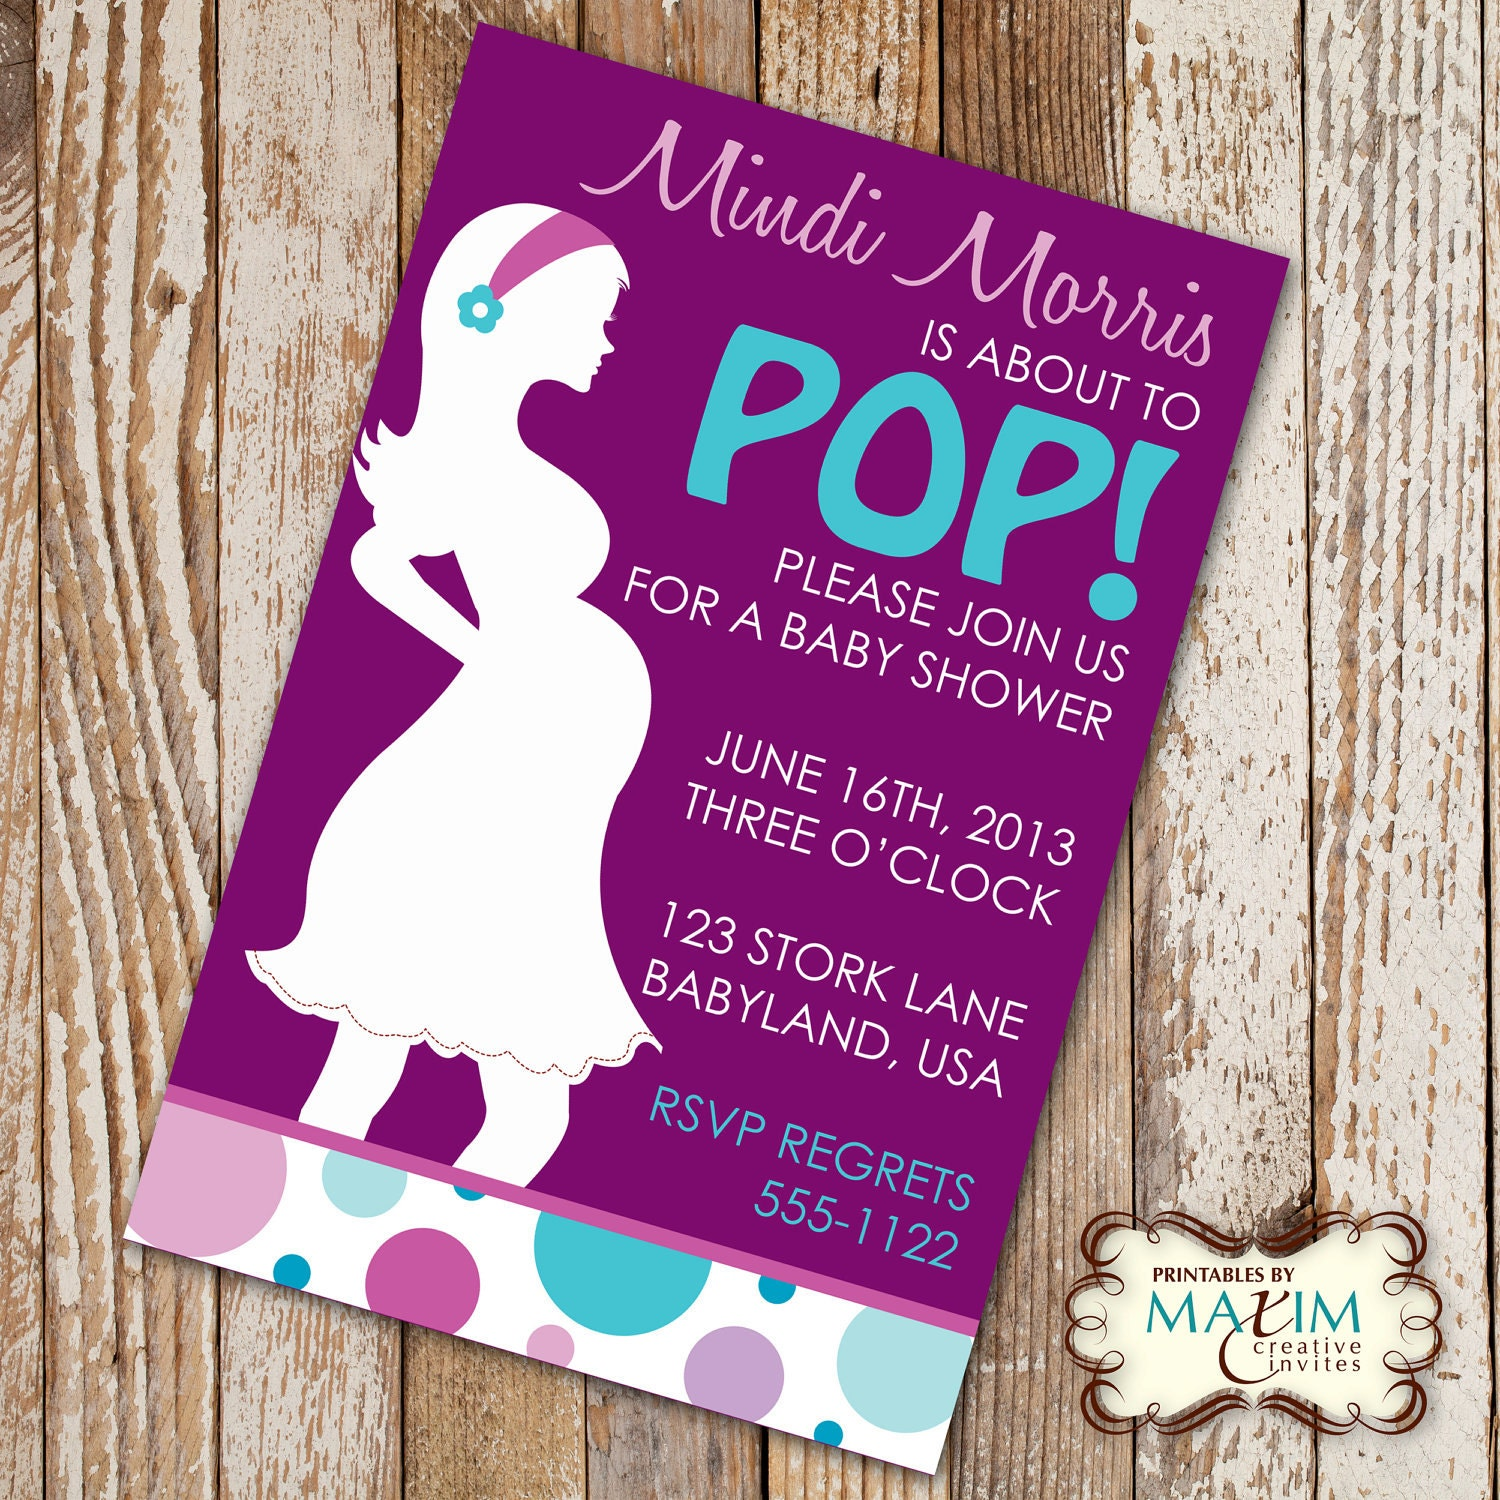 diy printable invitation she 39 s about to pop baby shower